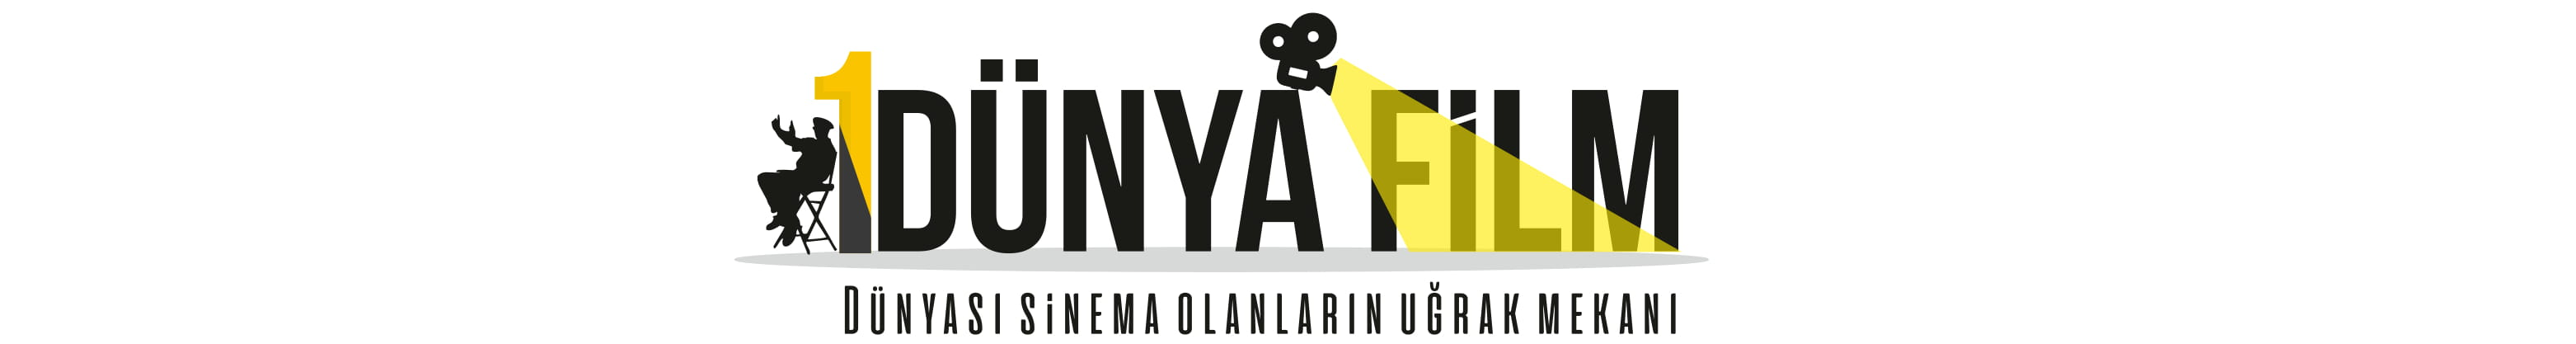 birdunyafilm.co